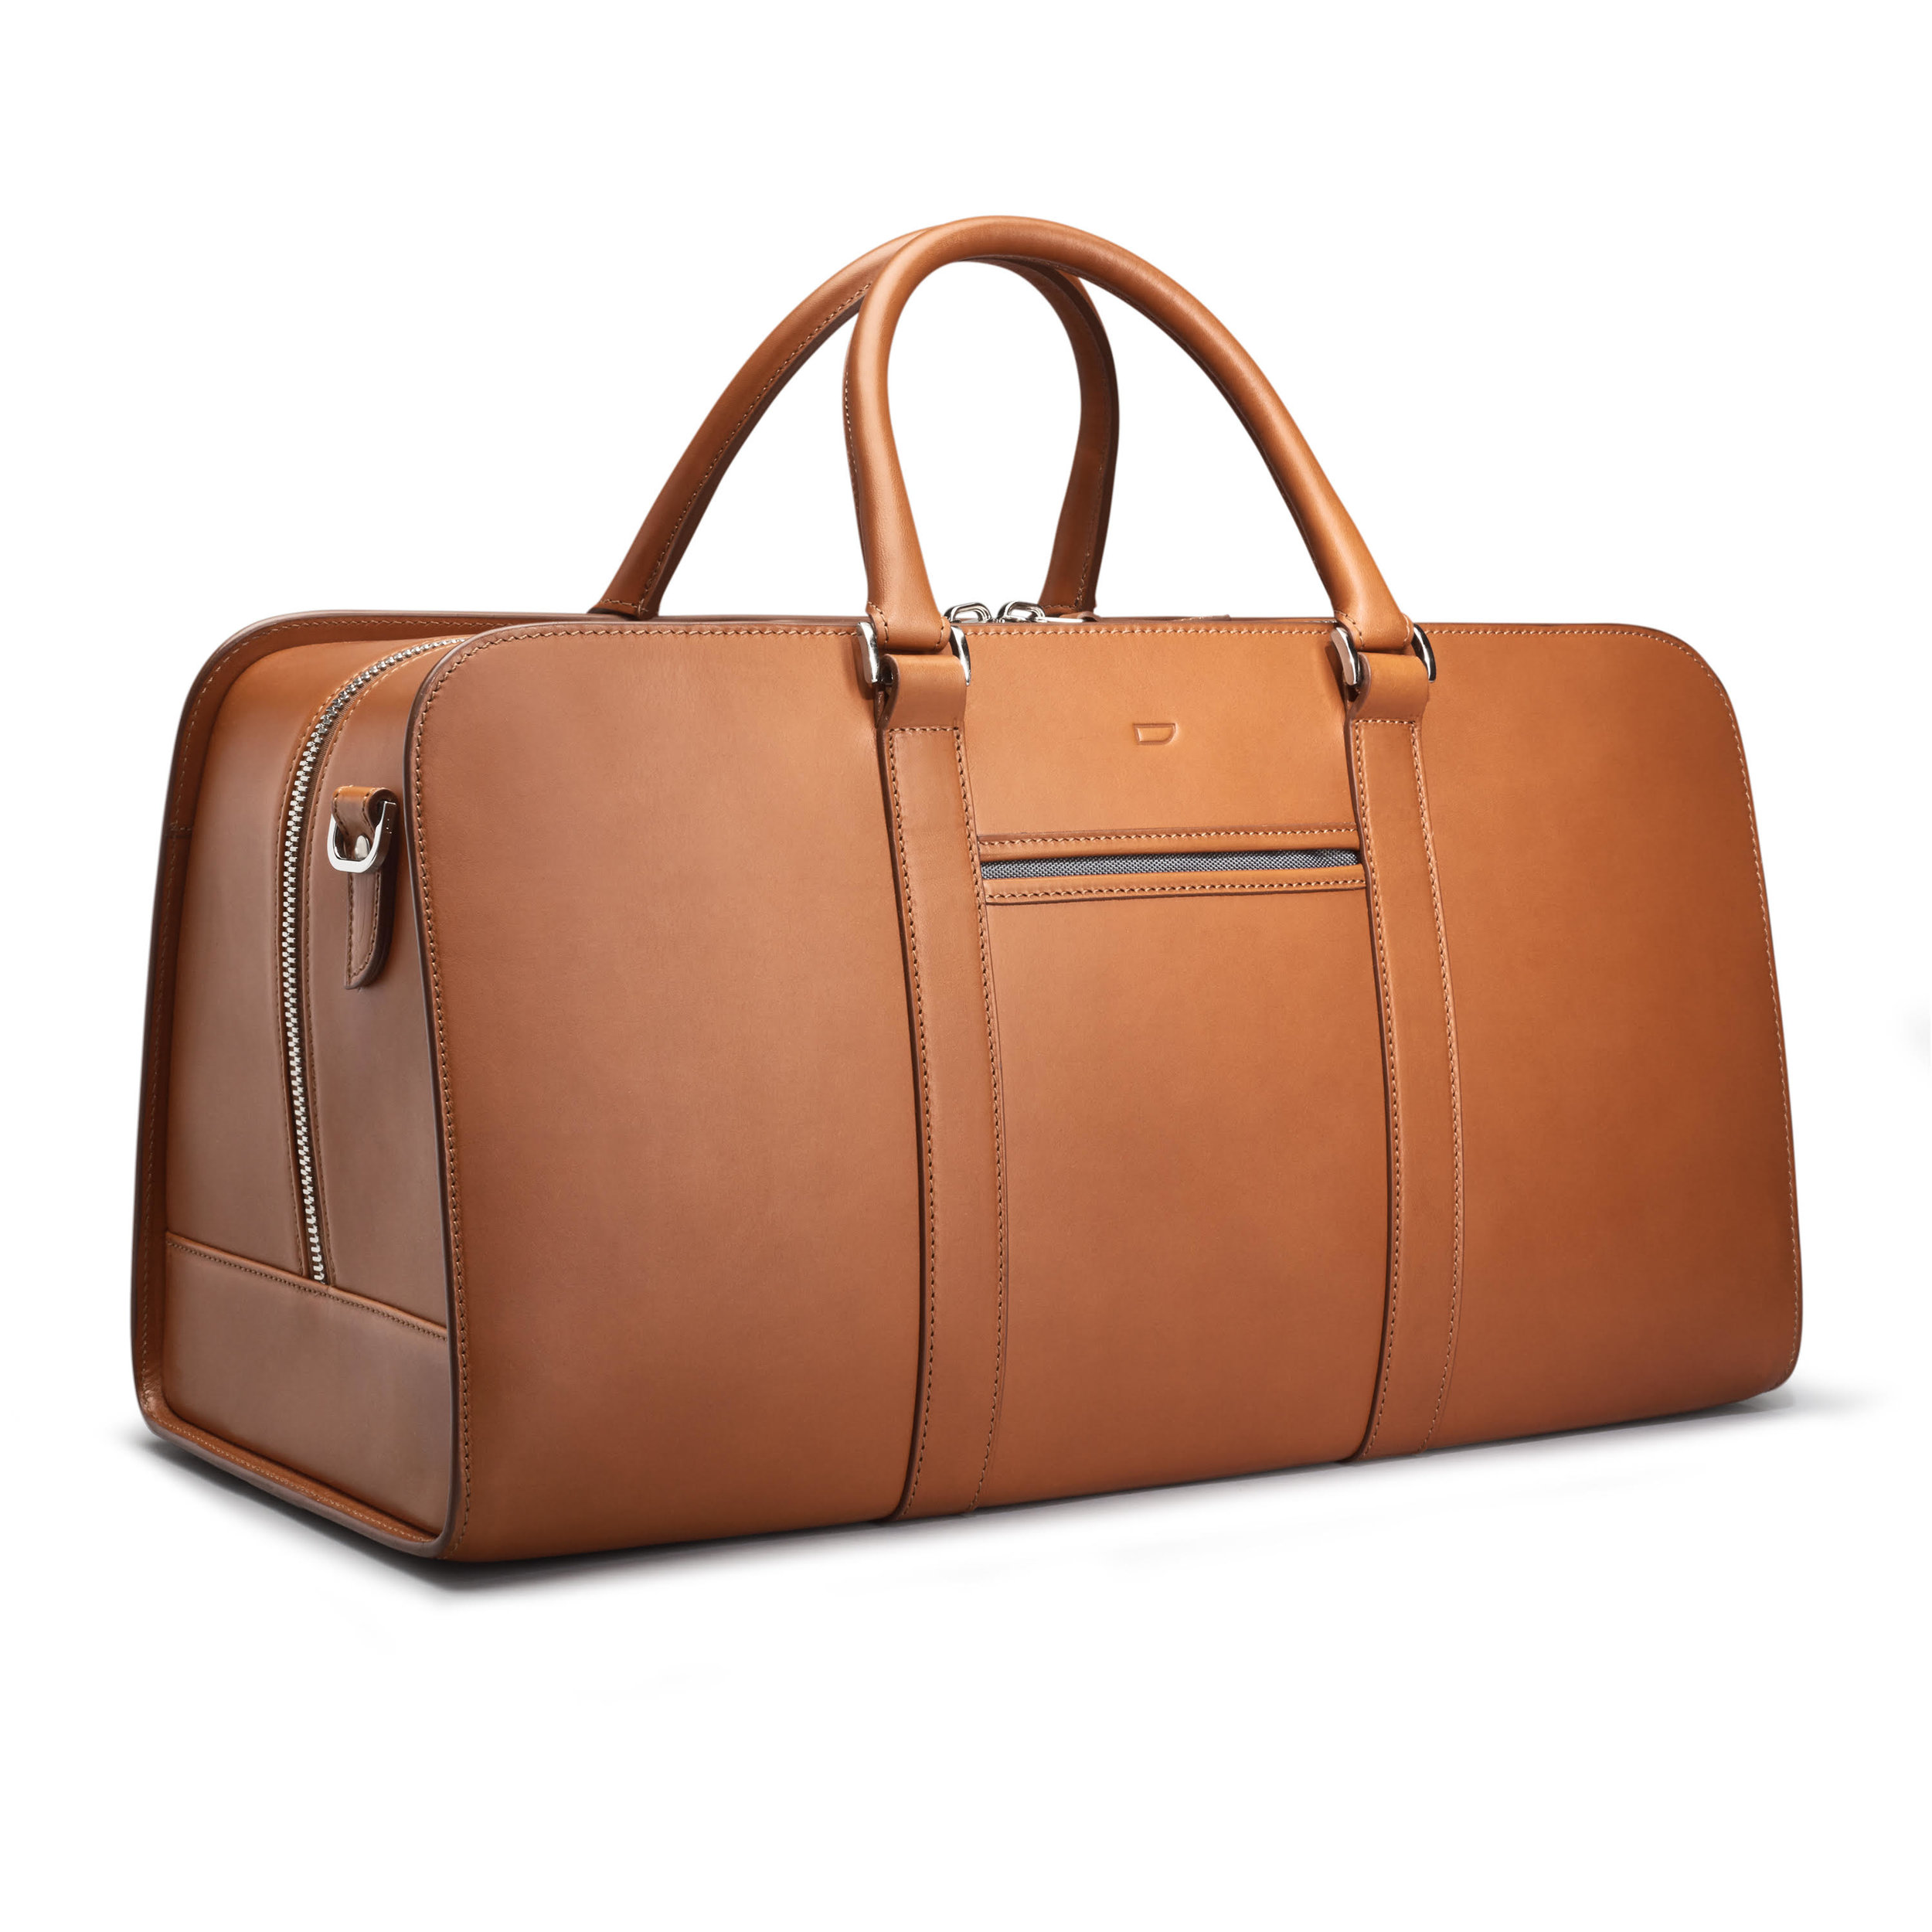 Carl Frederik Palissy weekend bag - £495 - Superb construction means that this bag won't change shape, no matter how many pants you try to cram into it